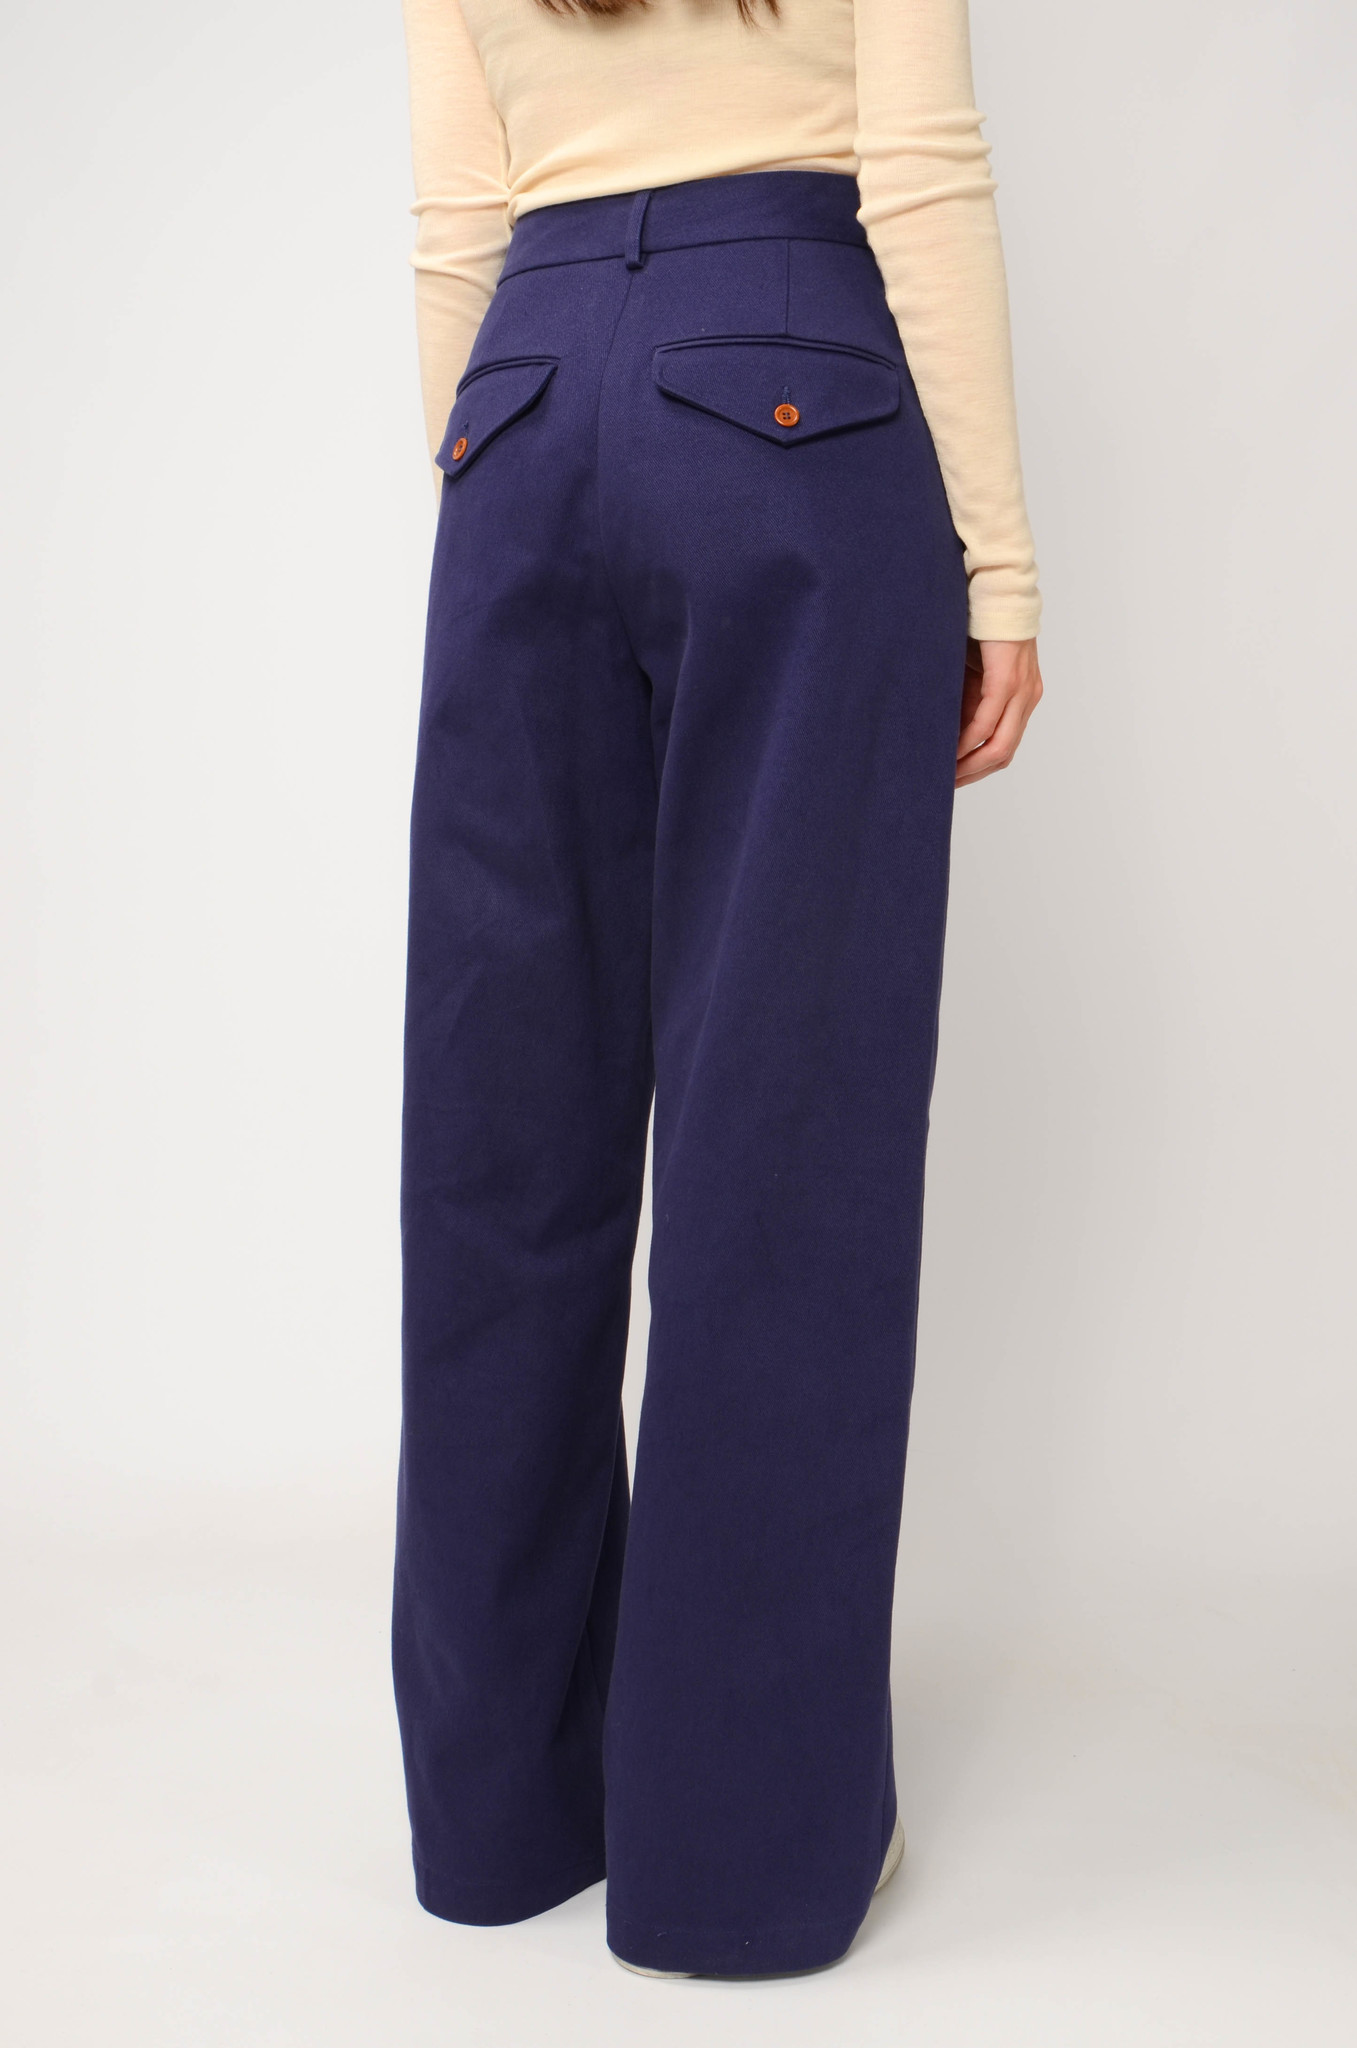 ANNIE TROUSERS IN NAVY BLUE-4